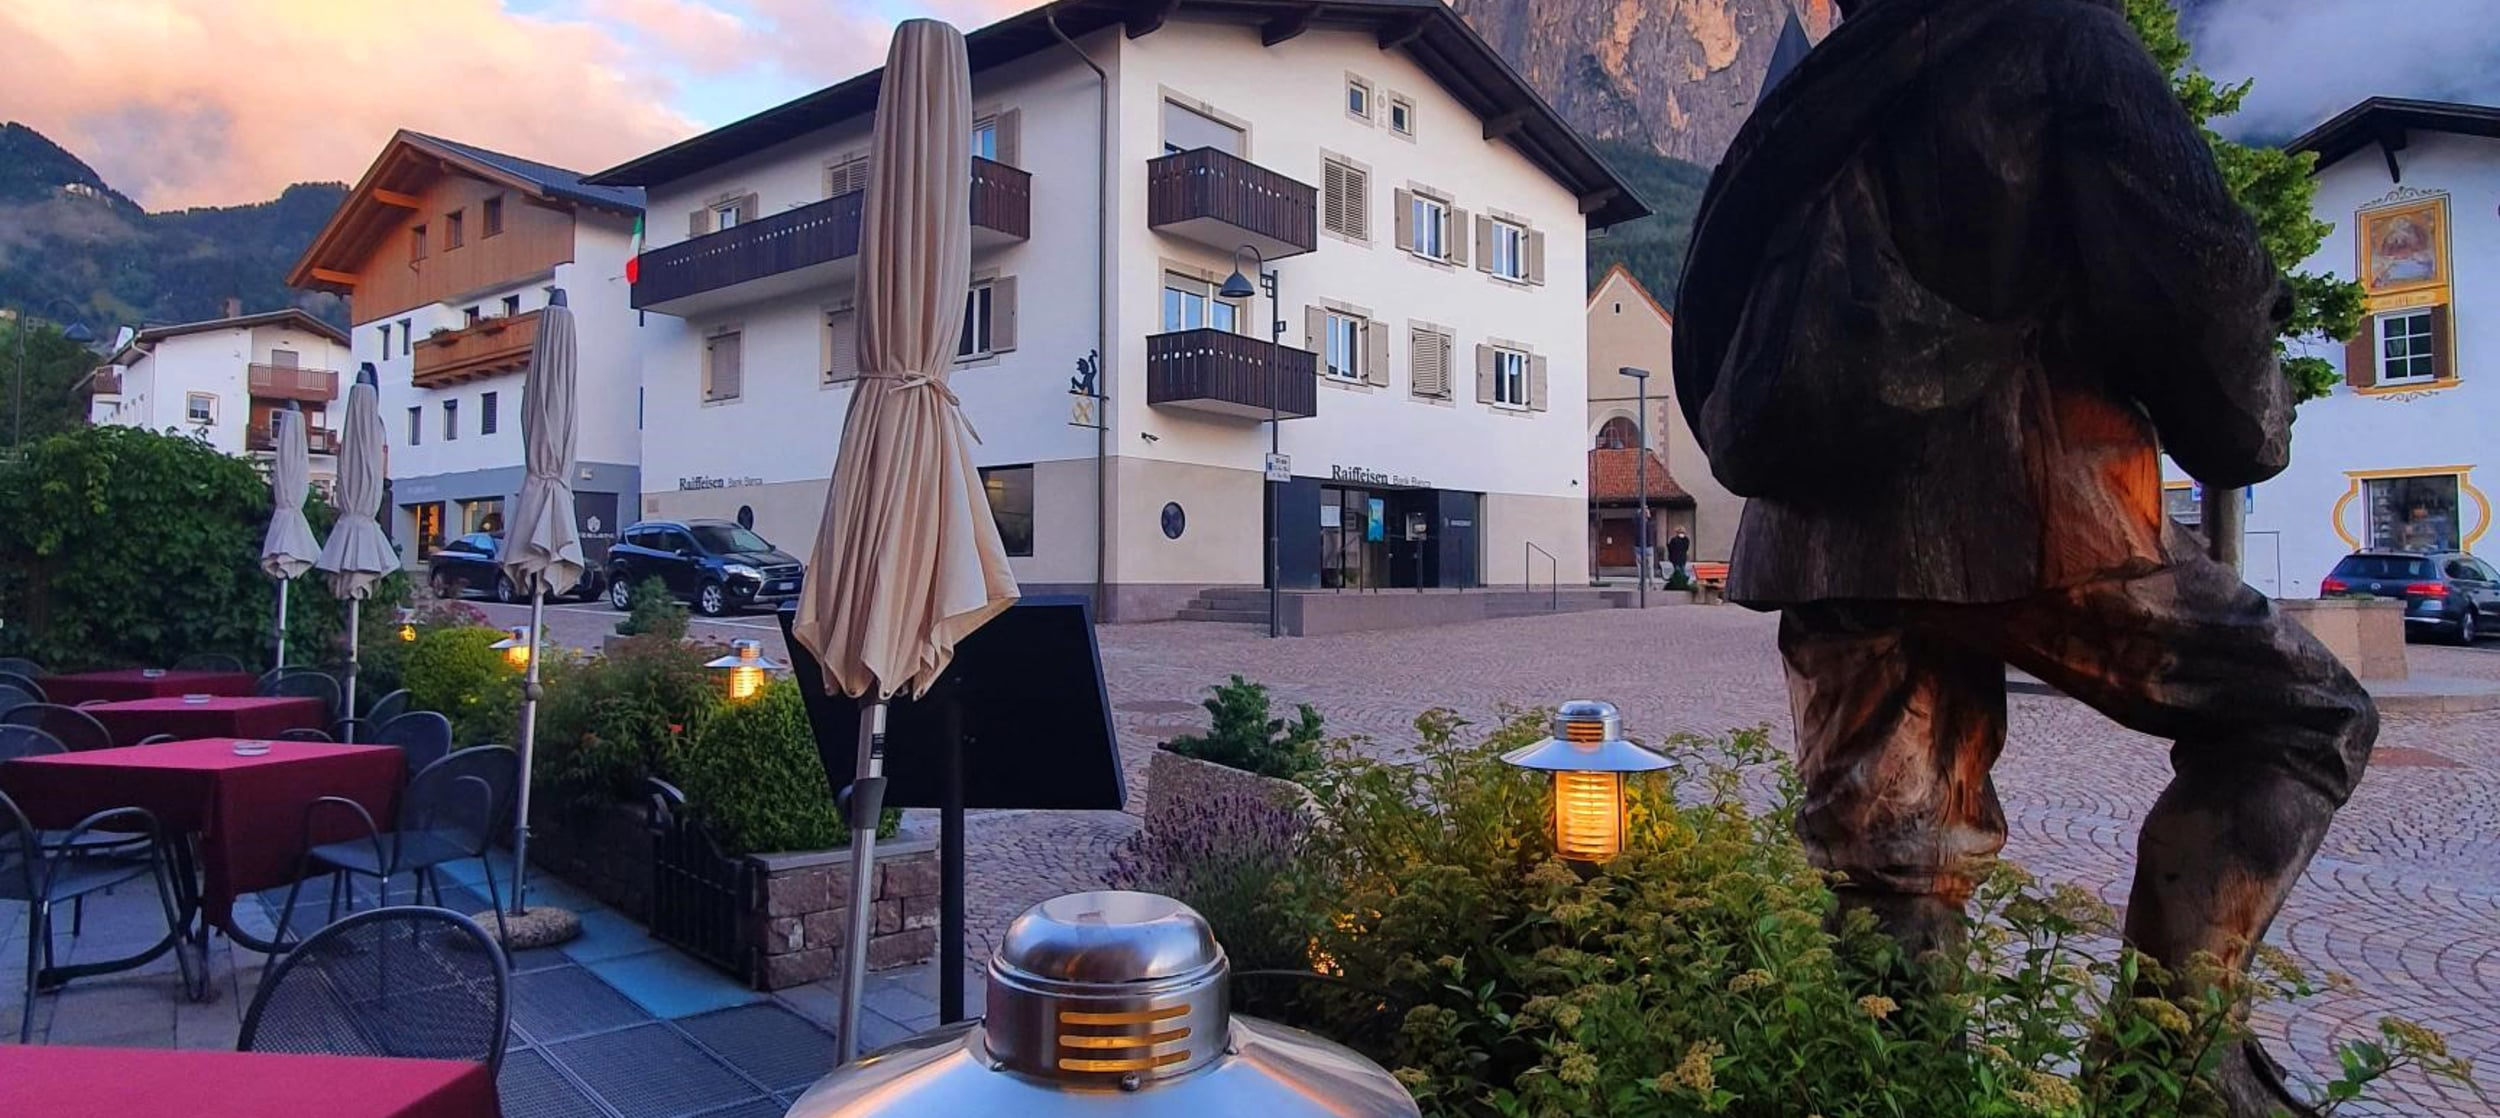 The perfect basecamp hotel in the Dolomites